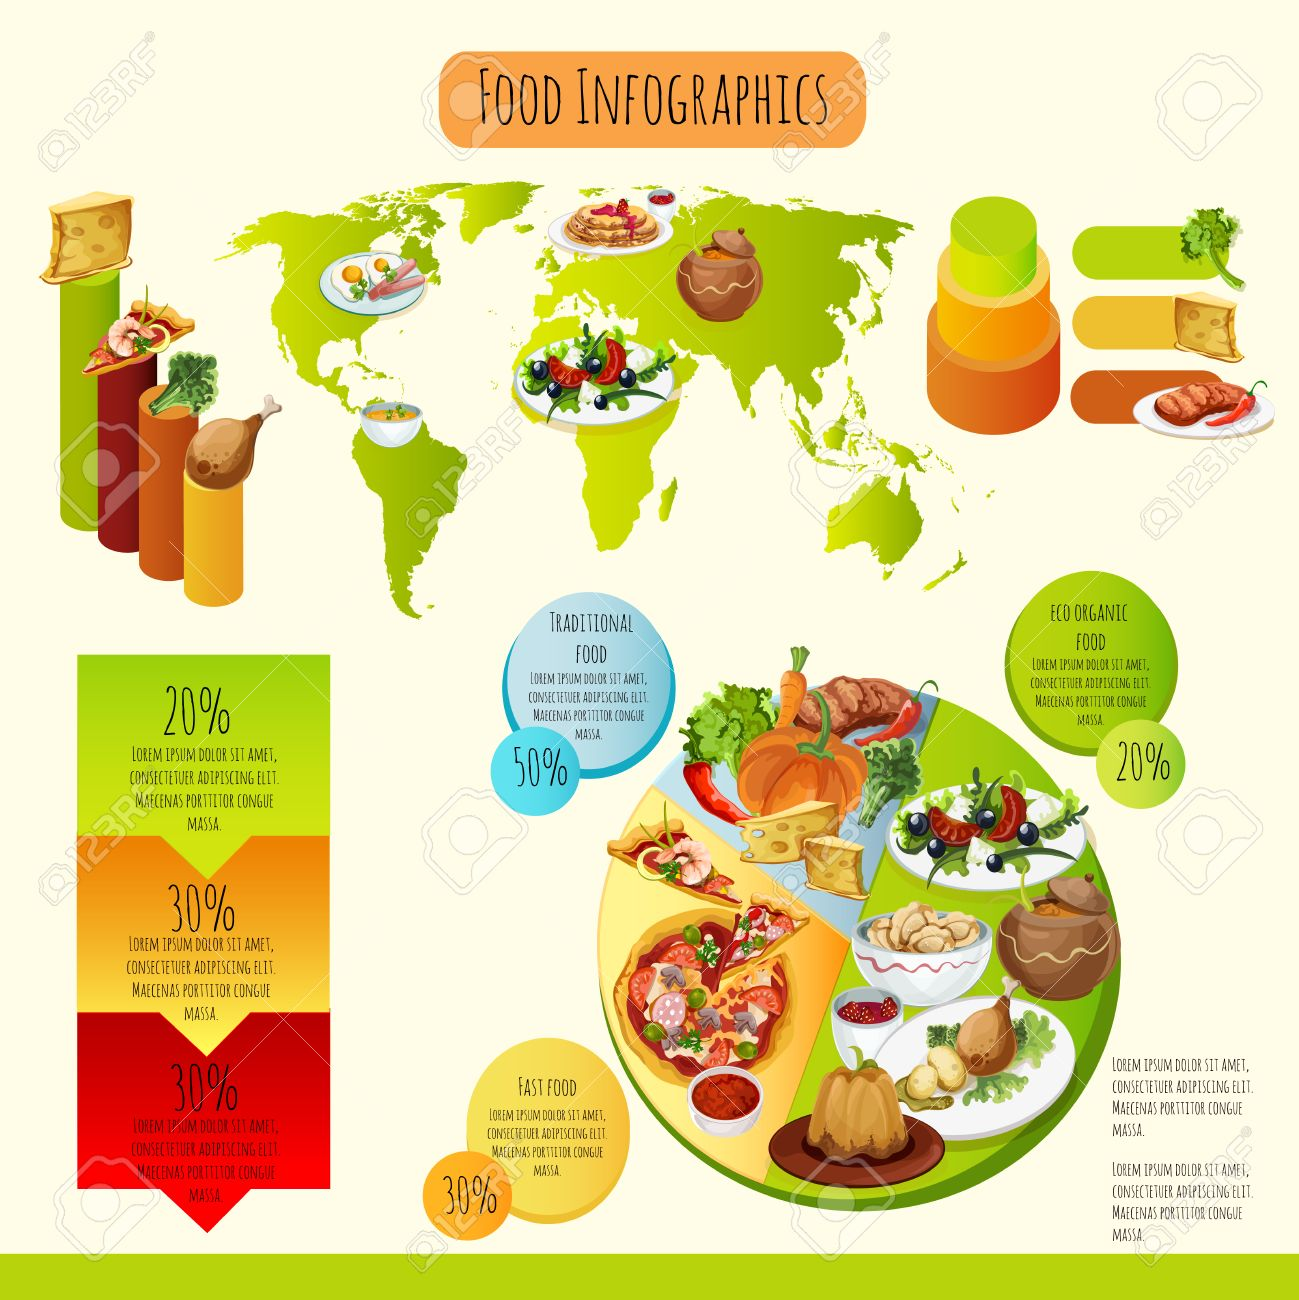 Traditional food infographics set with eco healthy and fast food traditional food infographics set with eco healthy and fast food symbols and world map vector illustration gumiabroncs Choice Image